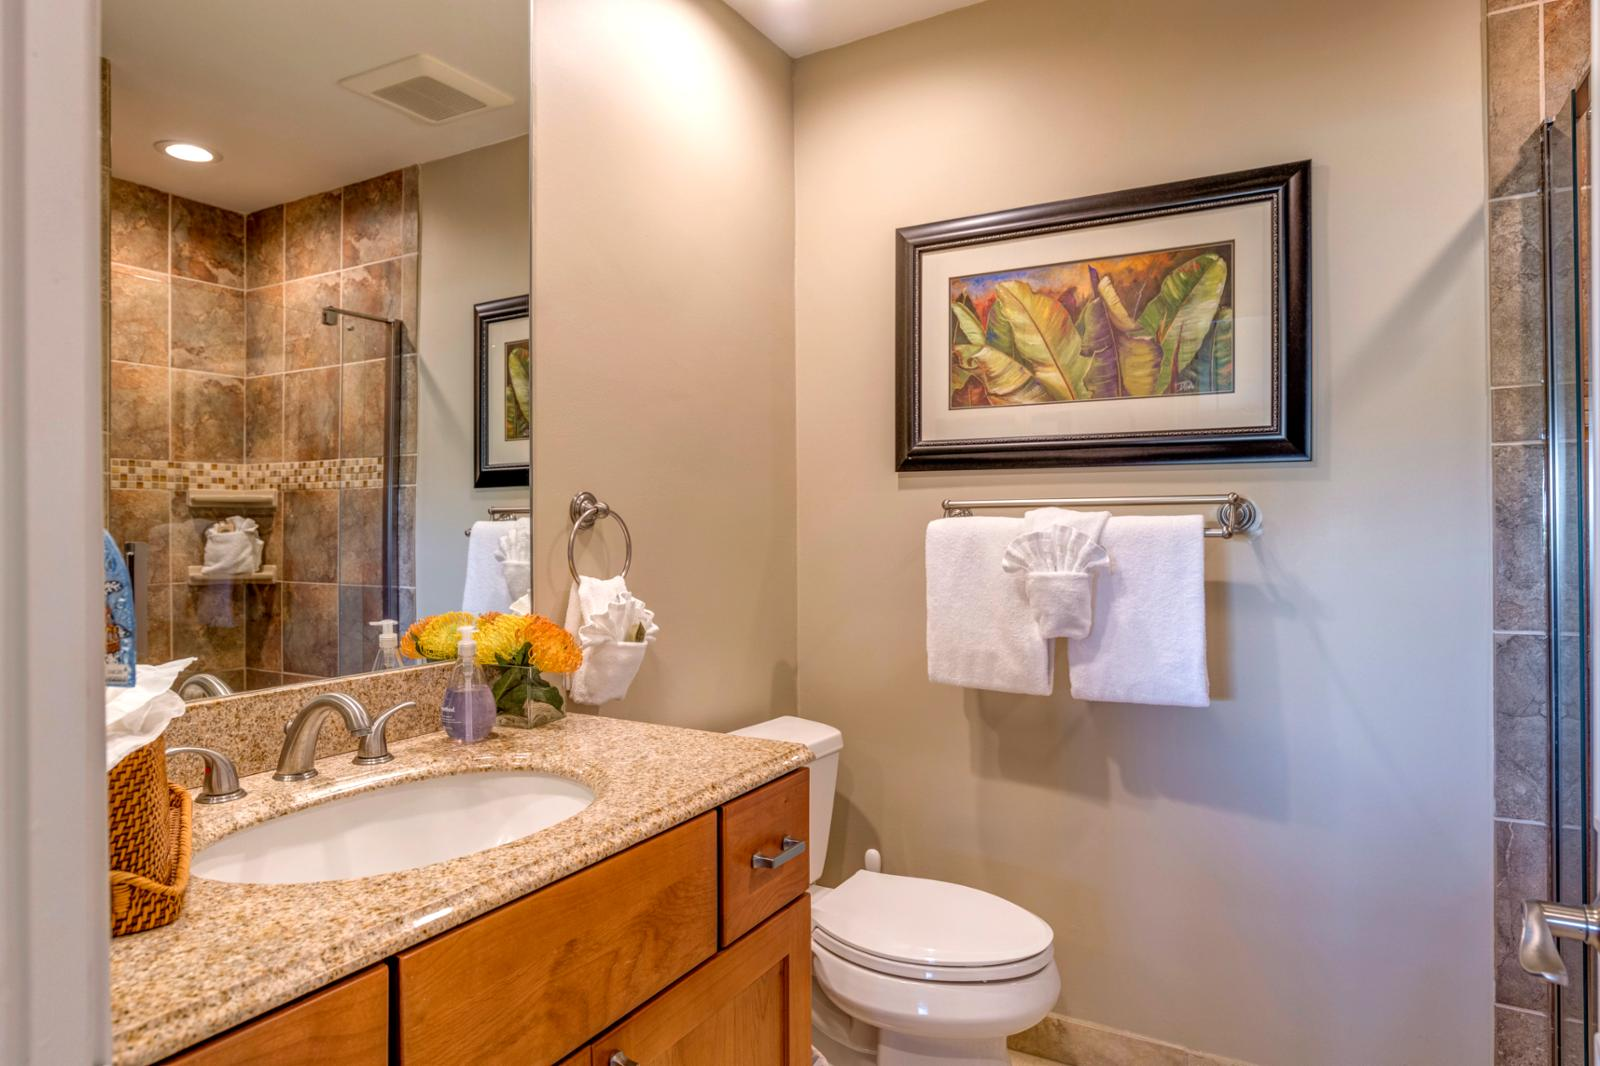 Luxury finishes and custom accents, single sunken sink